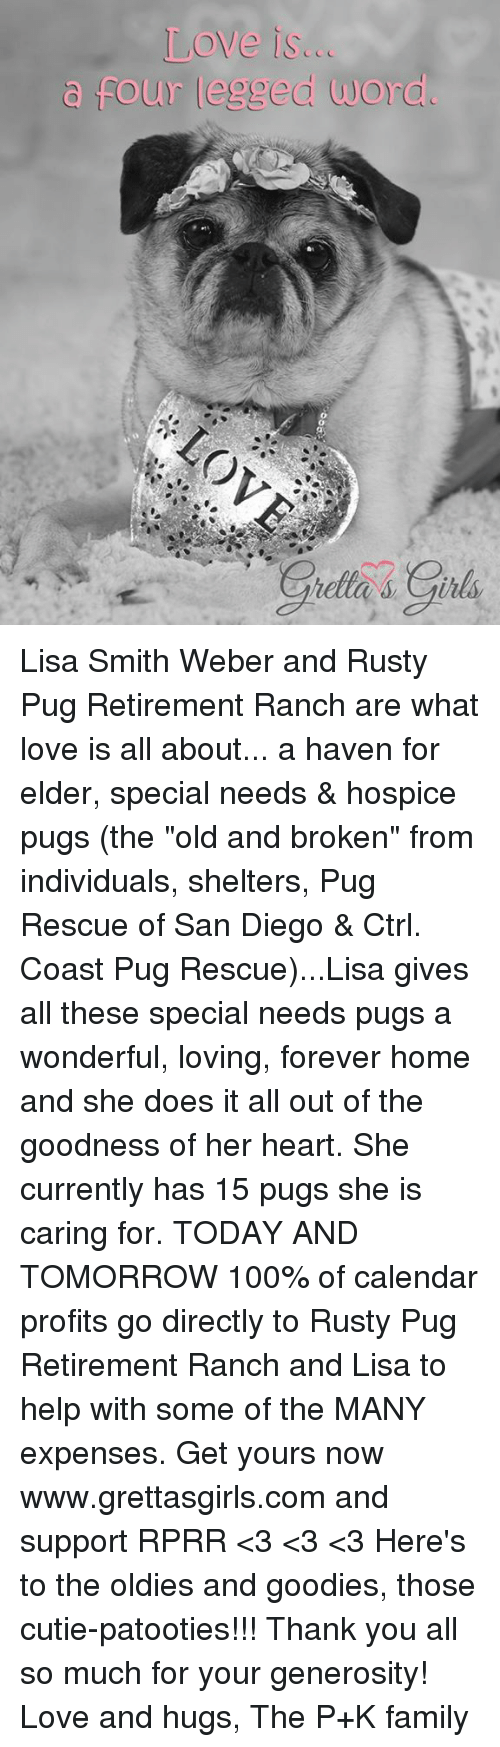 """Memes, Calendar, and Pugs: Love is...  four legged word. Lisa Smith Weber and Rusty Pug Retirement Ranch are what love is all about... a haven for elder, special needs & hospice pugs (the """"old and broken"""" from individuals, shelters, Pug Rescue of San Diego & Ctrl. Coast Pug Rescue)...Lisa gives all these special needs pugs a wonderful, loving, forever home and she does it all out of the goodness of her heart. She currently has 15 pugs she is caring for.   TODAY AND TOMORROW 100% of calendar profits go directly to Rusty Pug Retirement Ranch and Lisa to help with some of the MANY expenses. Get yours now www.grettasgirls.com and support RPRR <3 <3 <3 Here's to the oldies and goodies, those cutie-patooties!!!  Thank you all so much for your generosity! Love and hugs, The P+K family"""